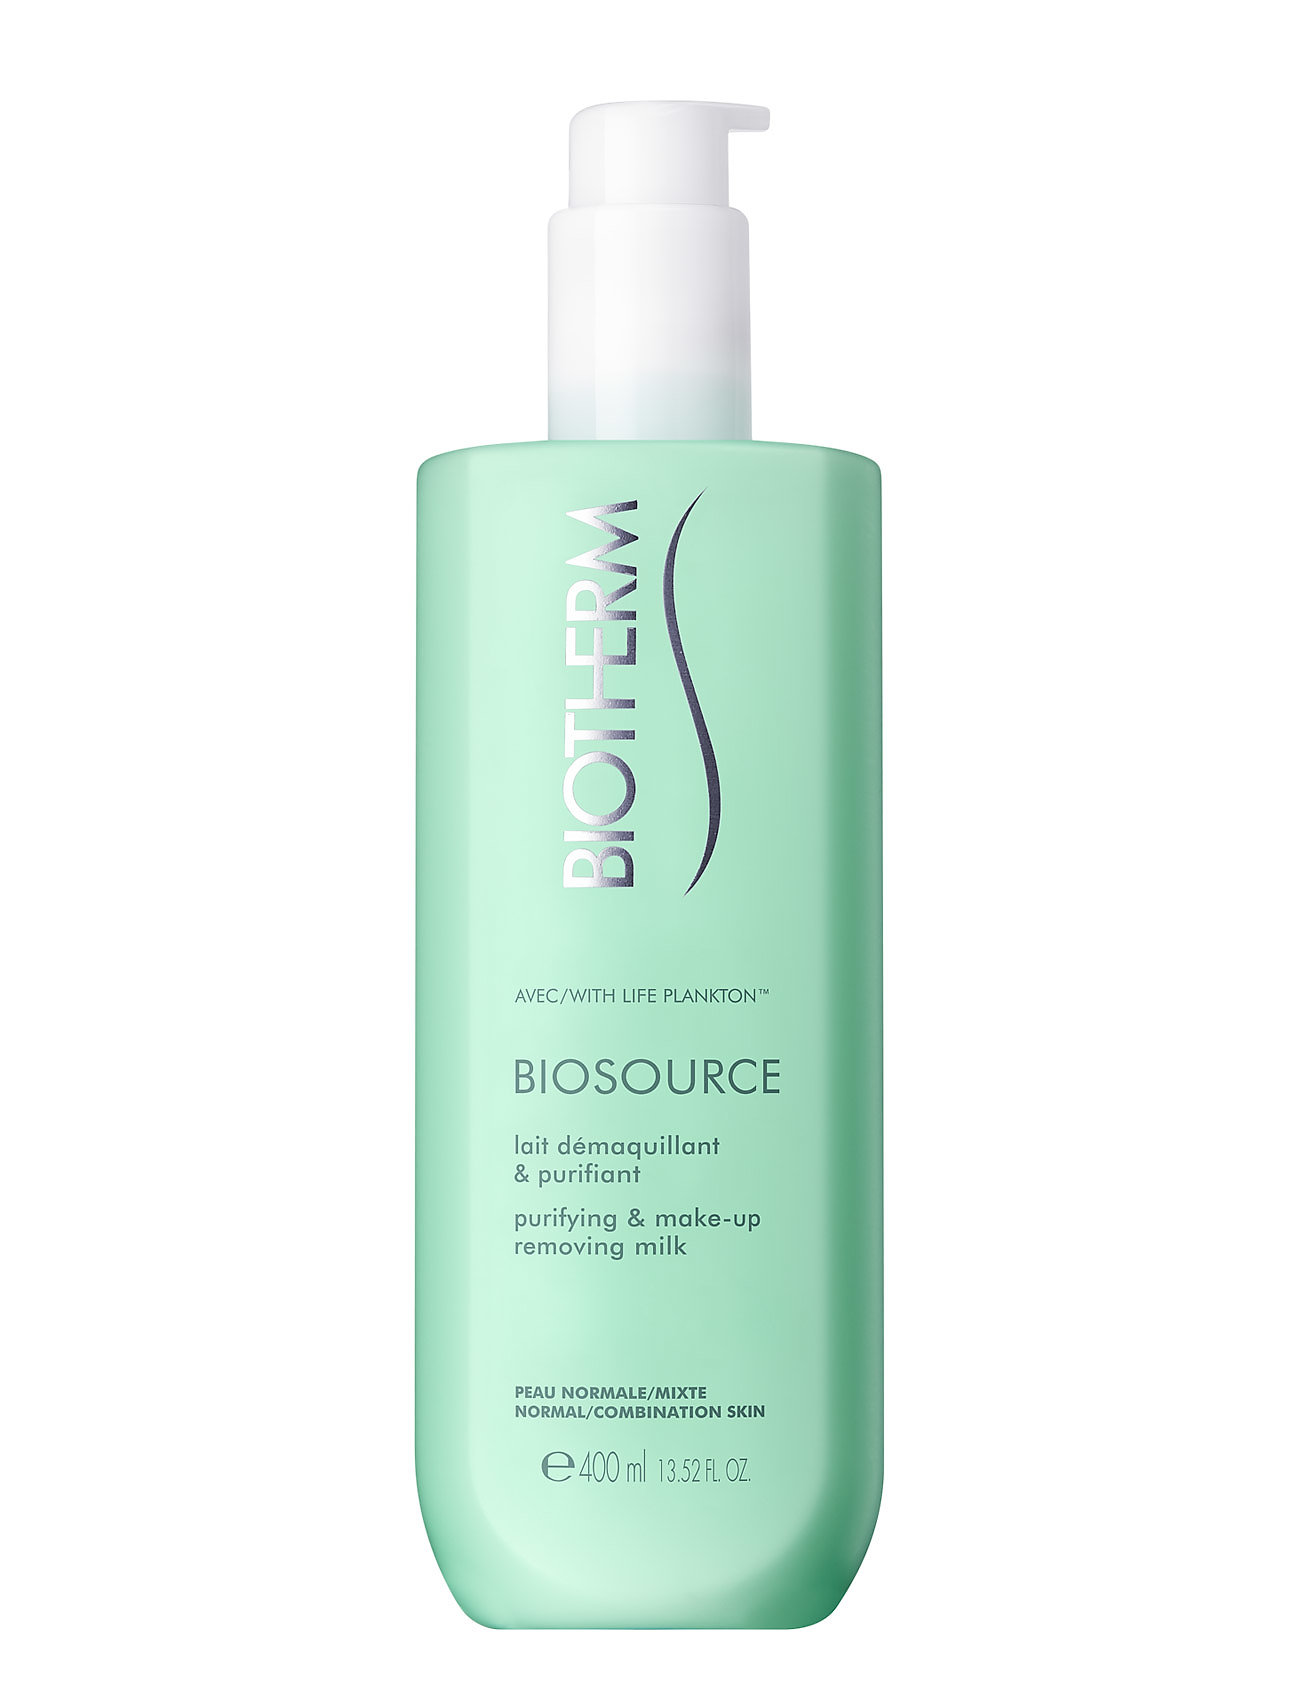 Biotherm Biosource Cleansing Milk Pnm 400 ml